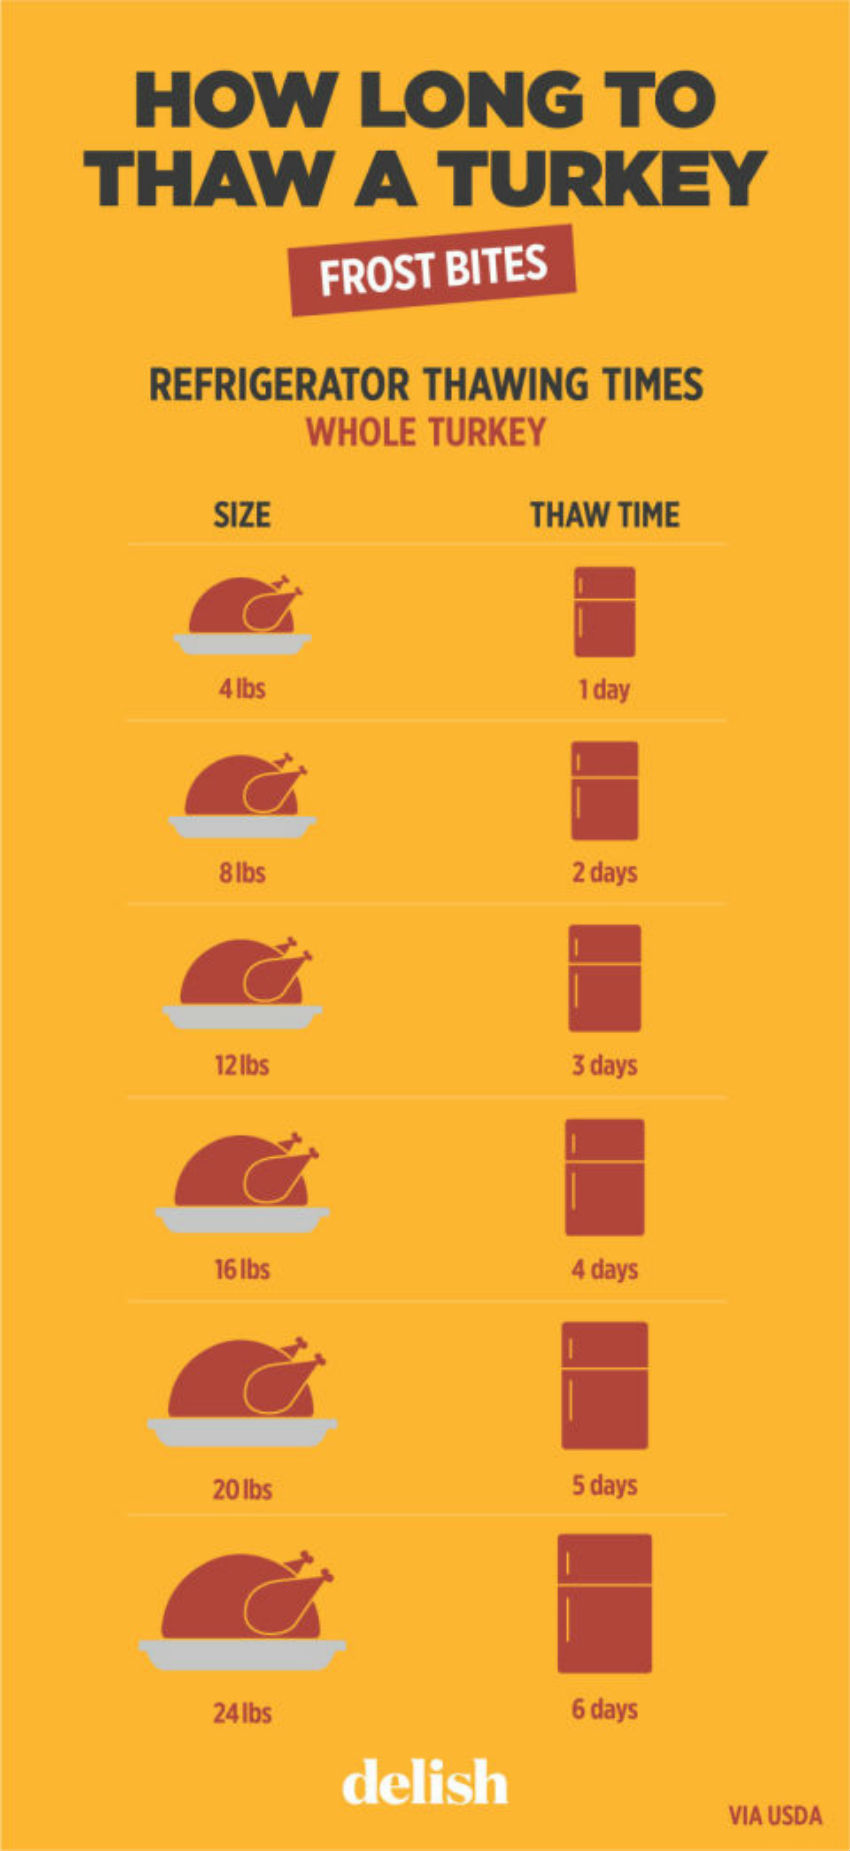 No mystery this year. This chart lets you knoe exactly how long to thaw a turkey. Image Source: Country Living